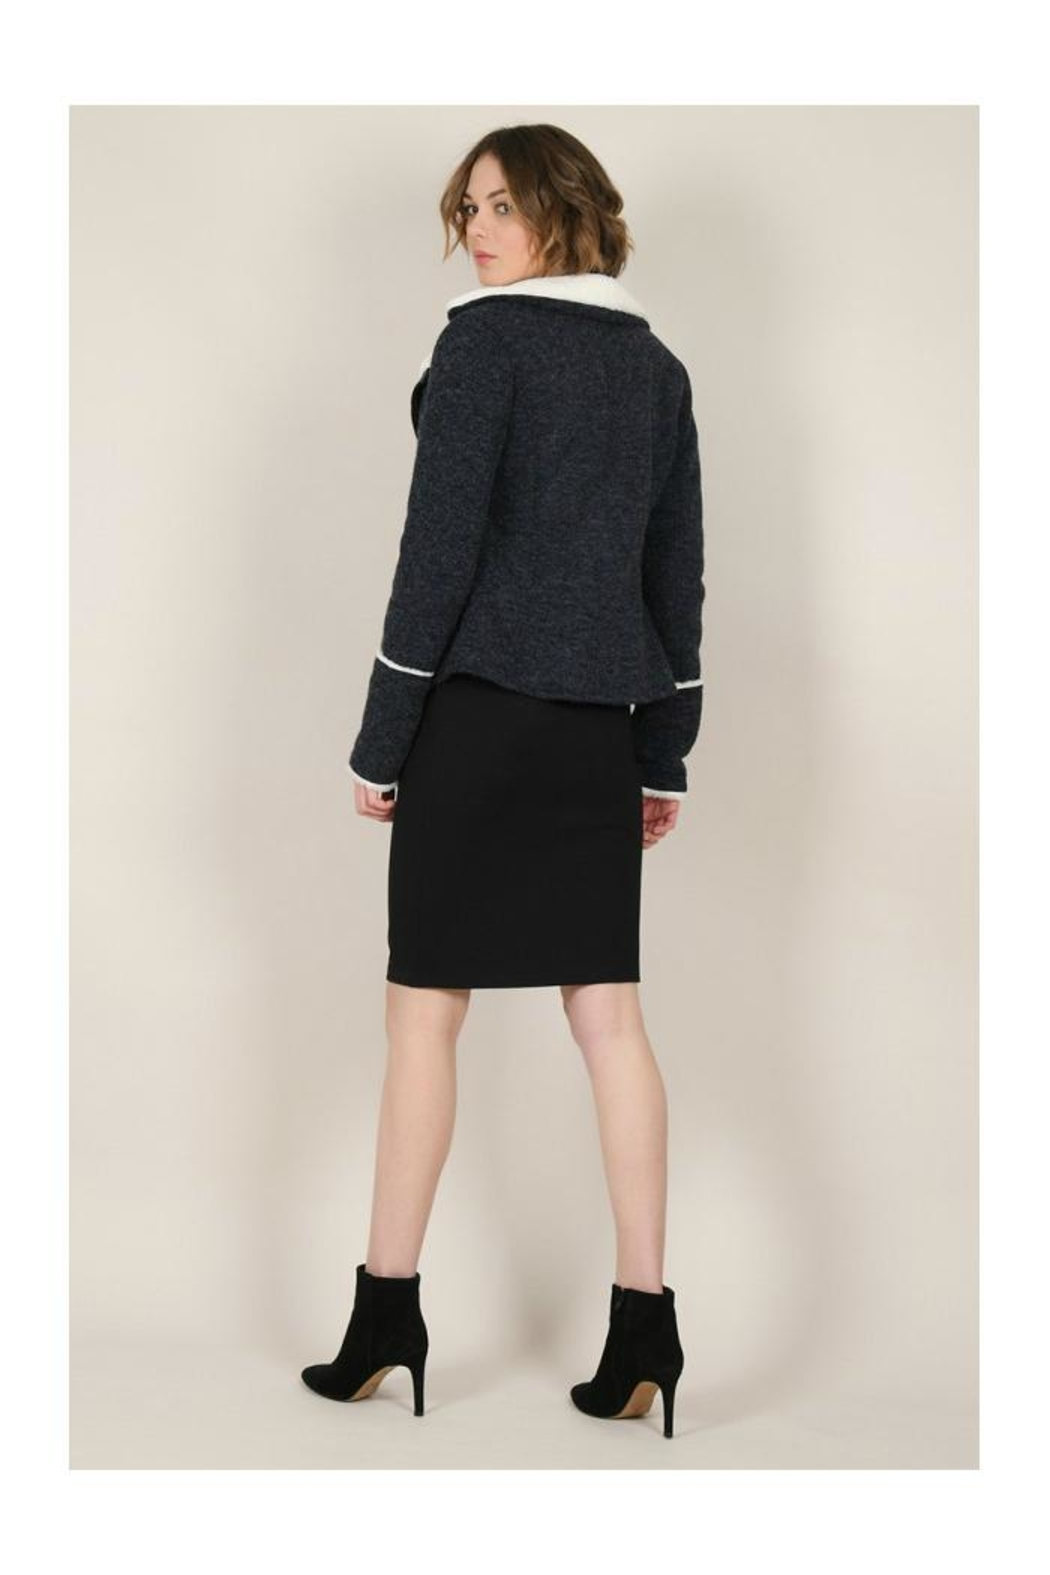 Molly Bracken Knitted Cozy Jacket - Back Cropped Image